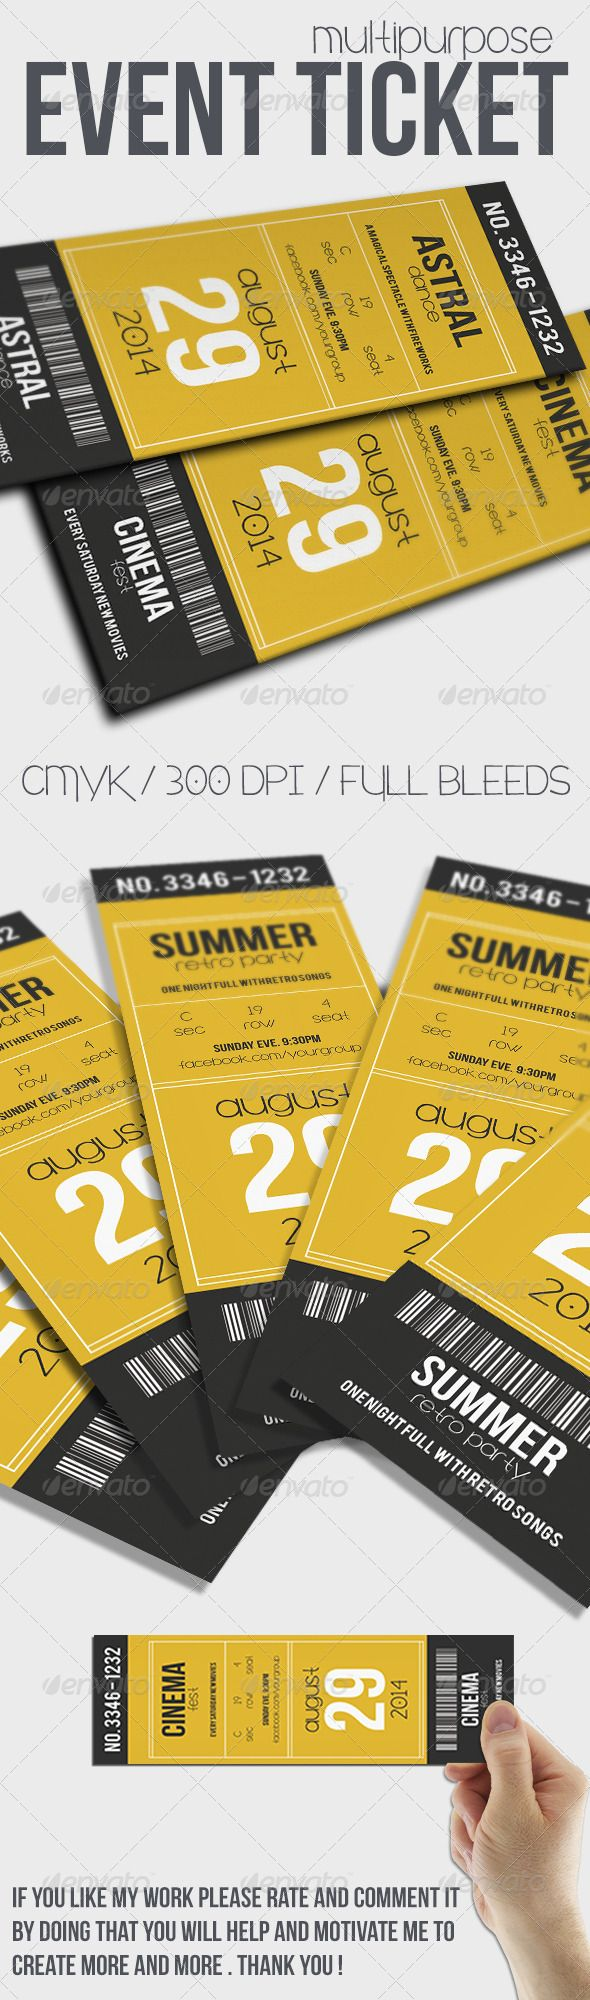 Multipurpose Event Ticket Templates PSD | Buy and Download: http://graphicriver.net/item/multipurpose-event-ticket/7843423?WT.ac=category_thumb&WT.z_author=Tzochko&ref=ksioks